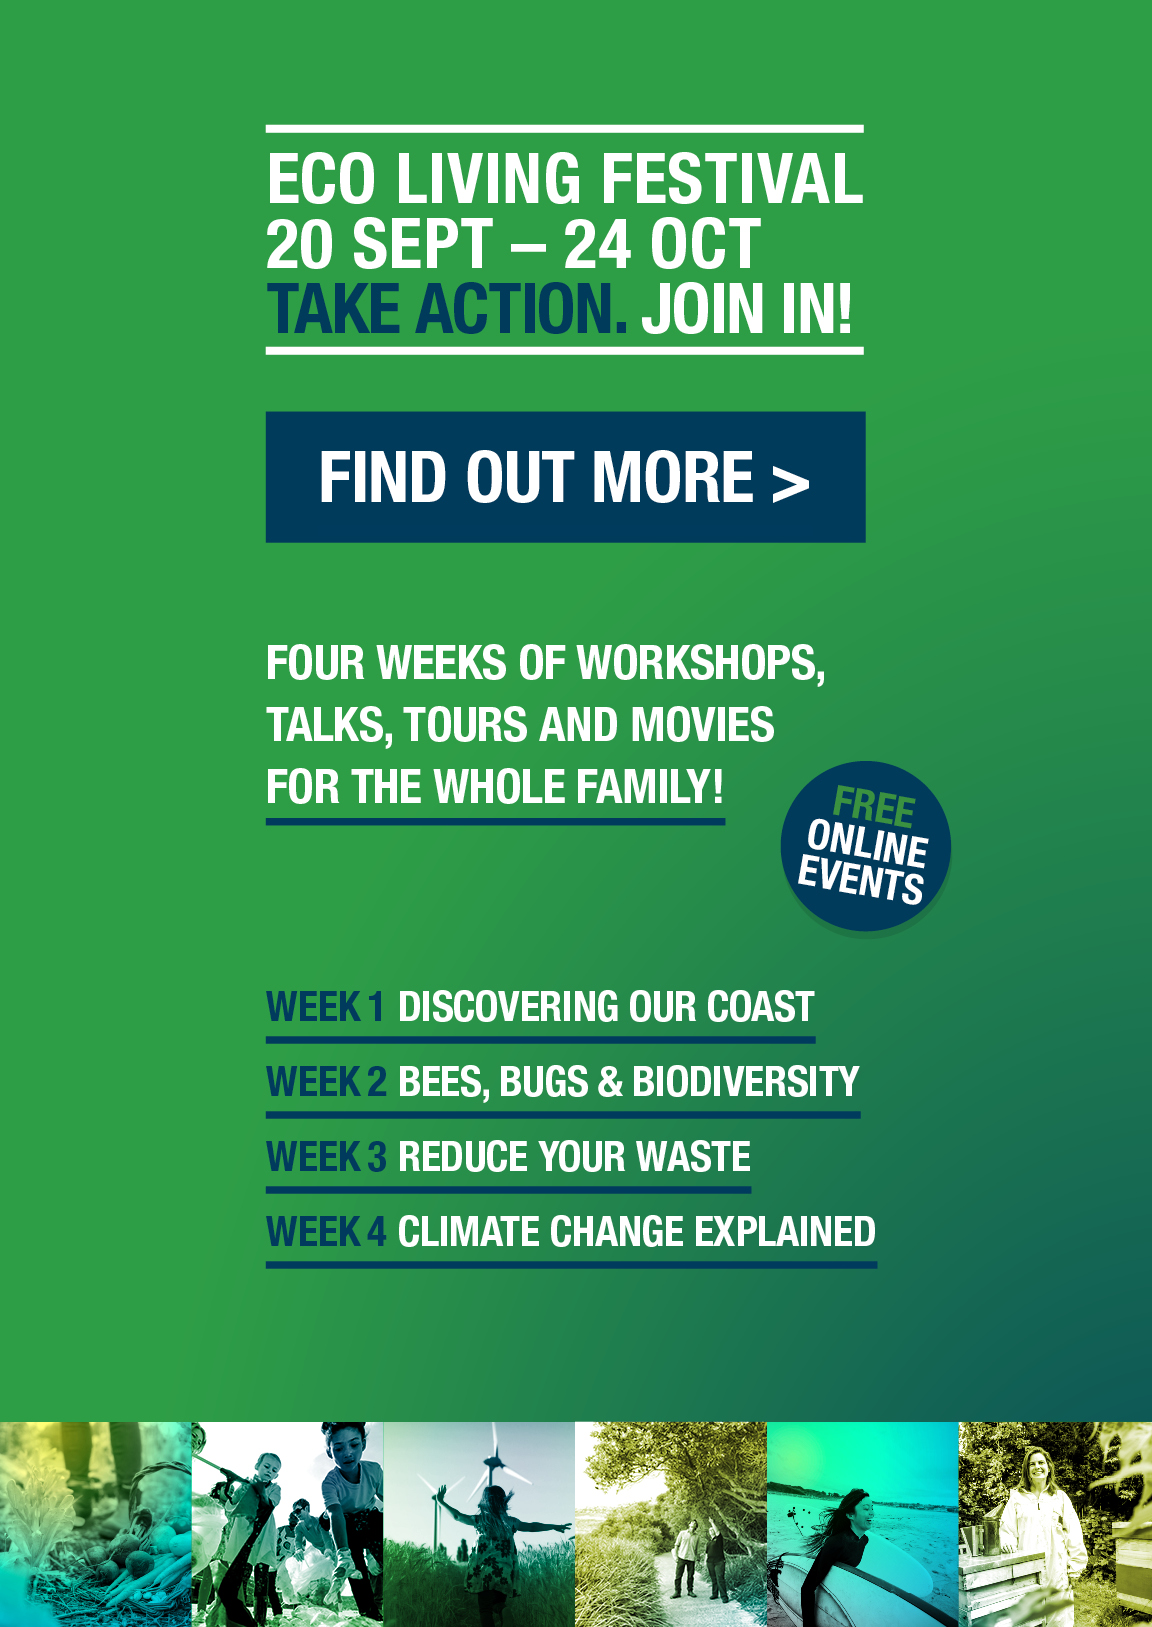 Eco Living Festival. 20 Sept - 24 Oct. Four weeks of workshops, talks, tours and movies for the whole family. Free online events